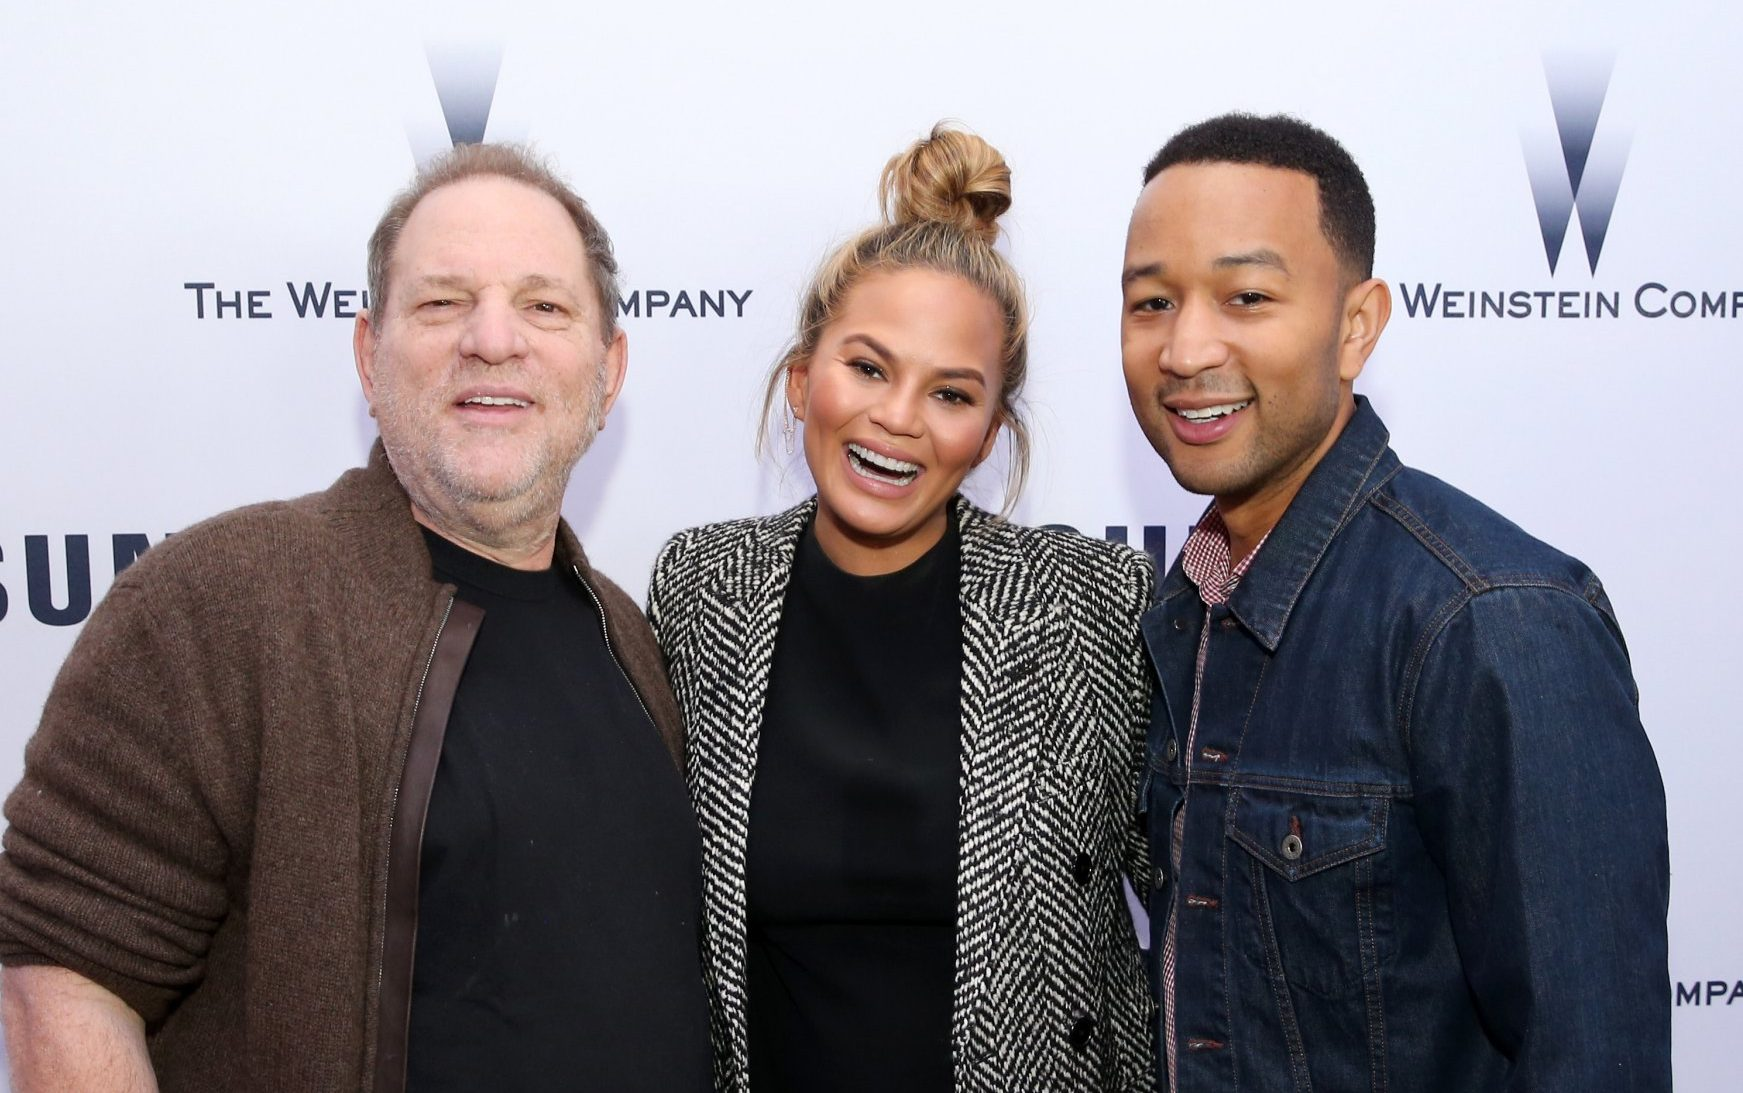 John Legend defends Harvey Weinstein photo after appearing in R Kelly documentary